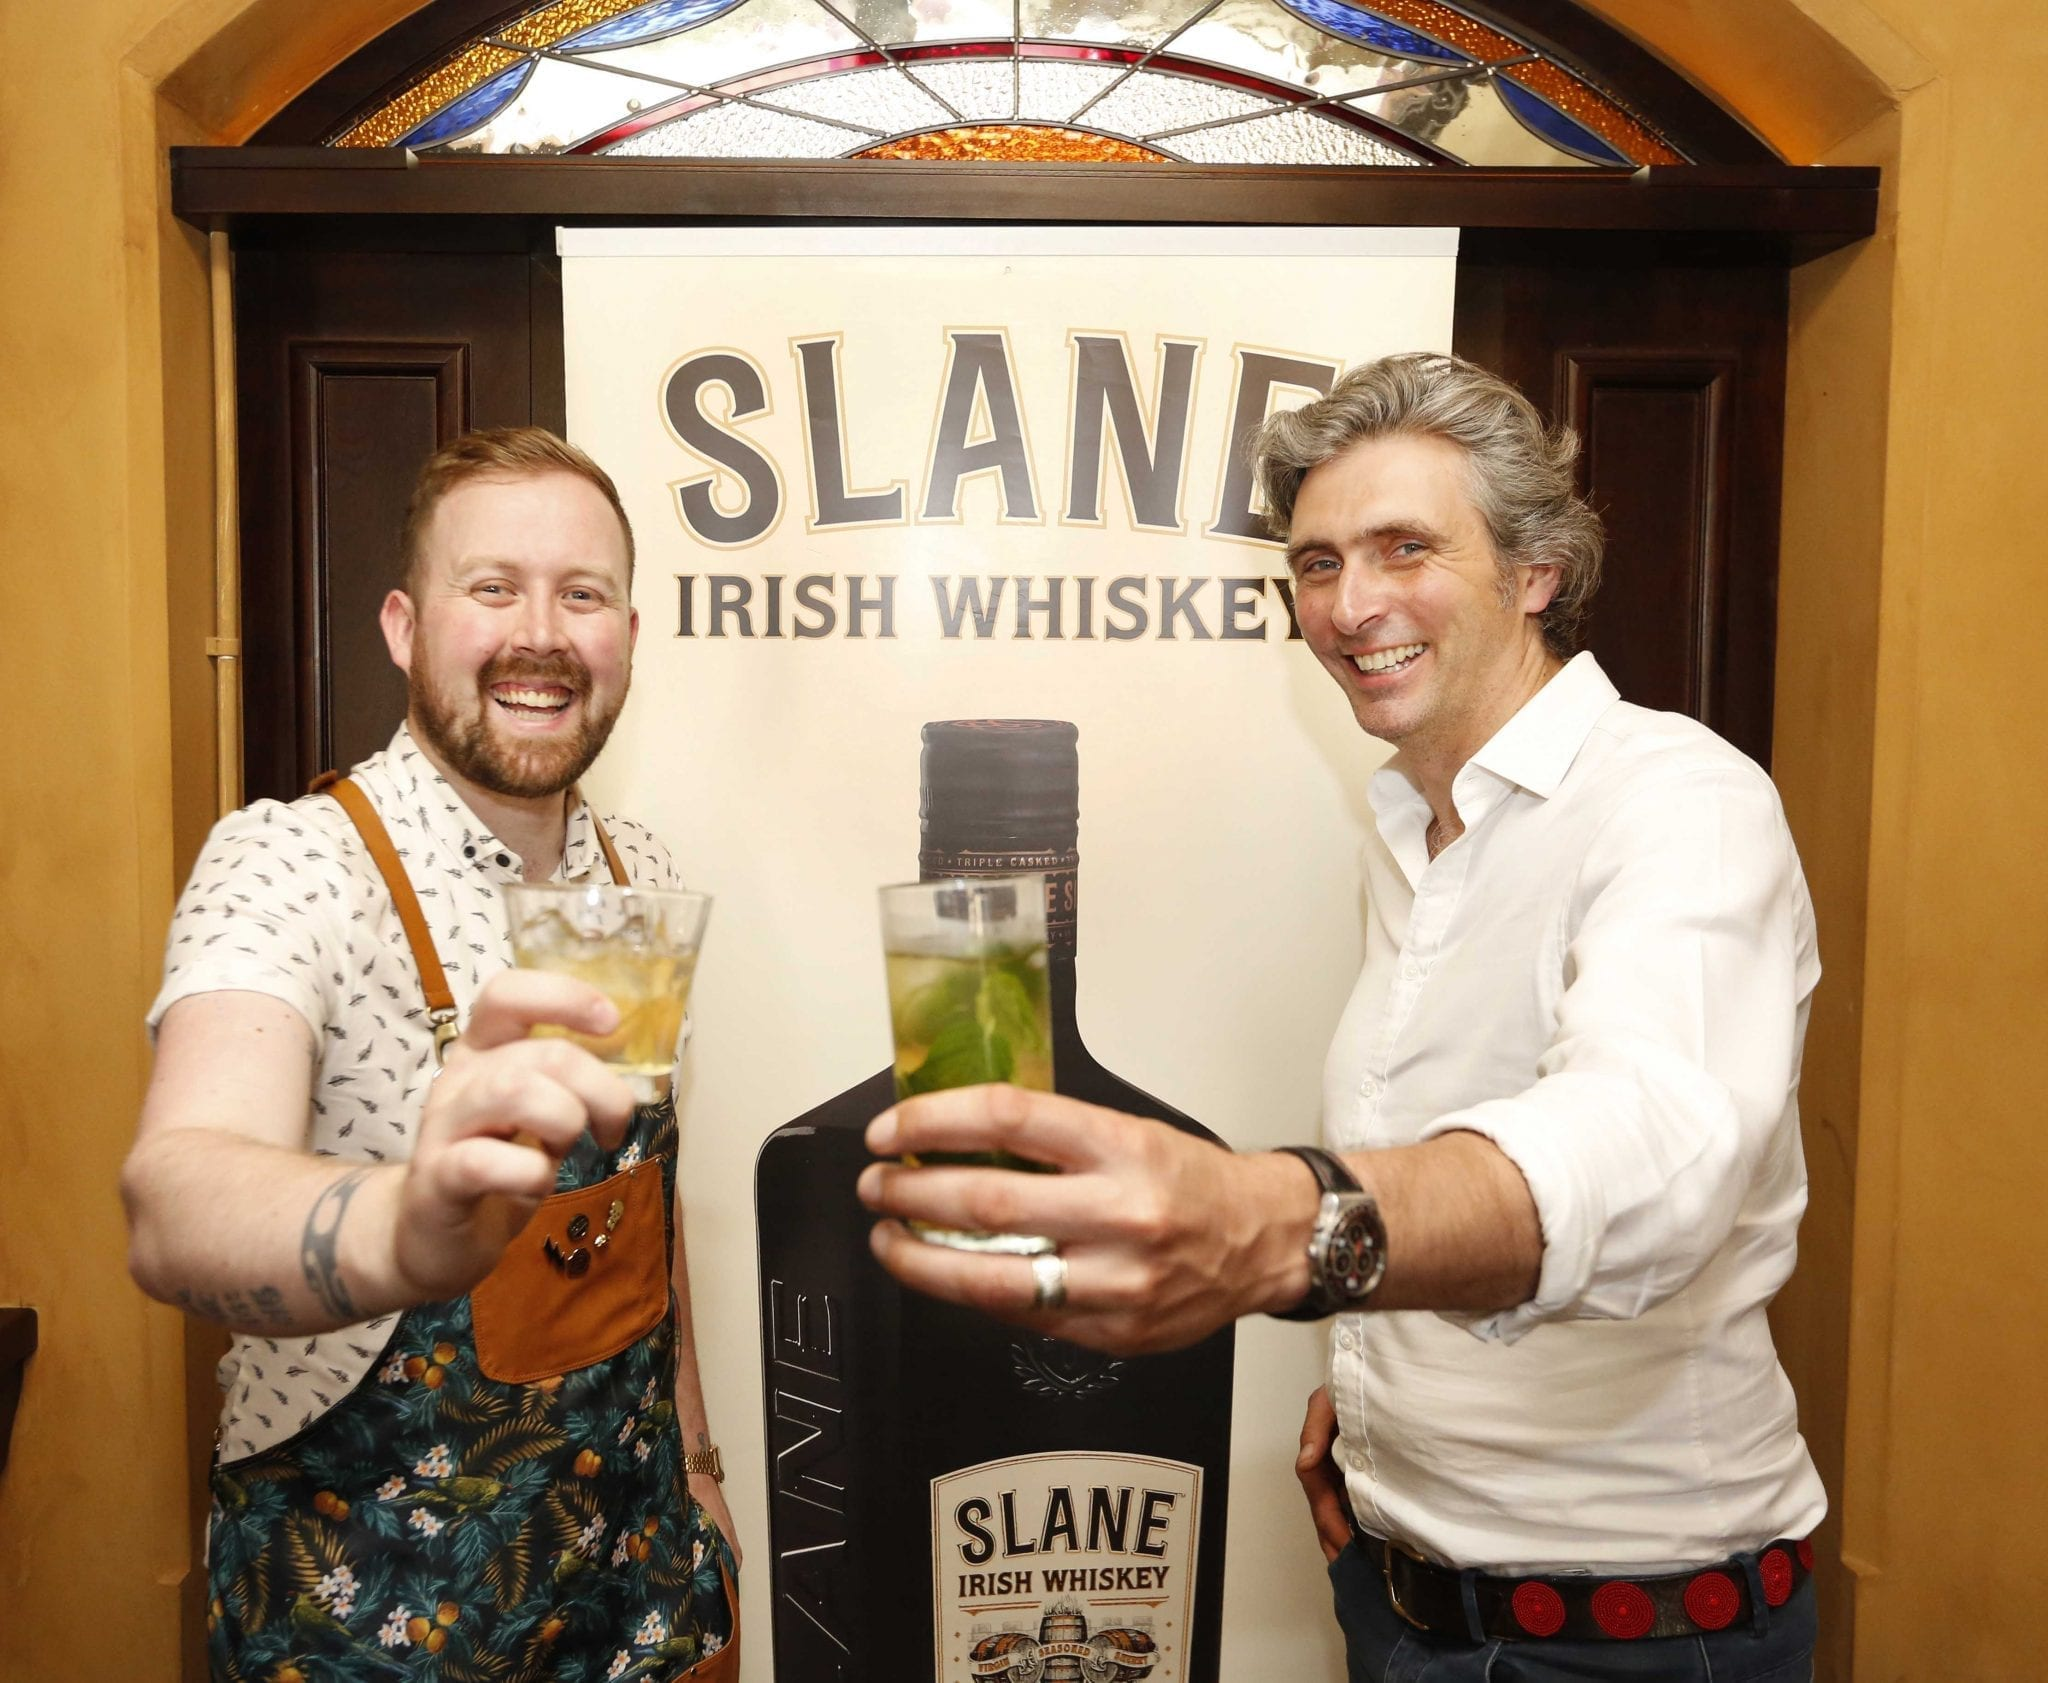 Slane Whiskey Irish Whiskey